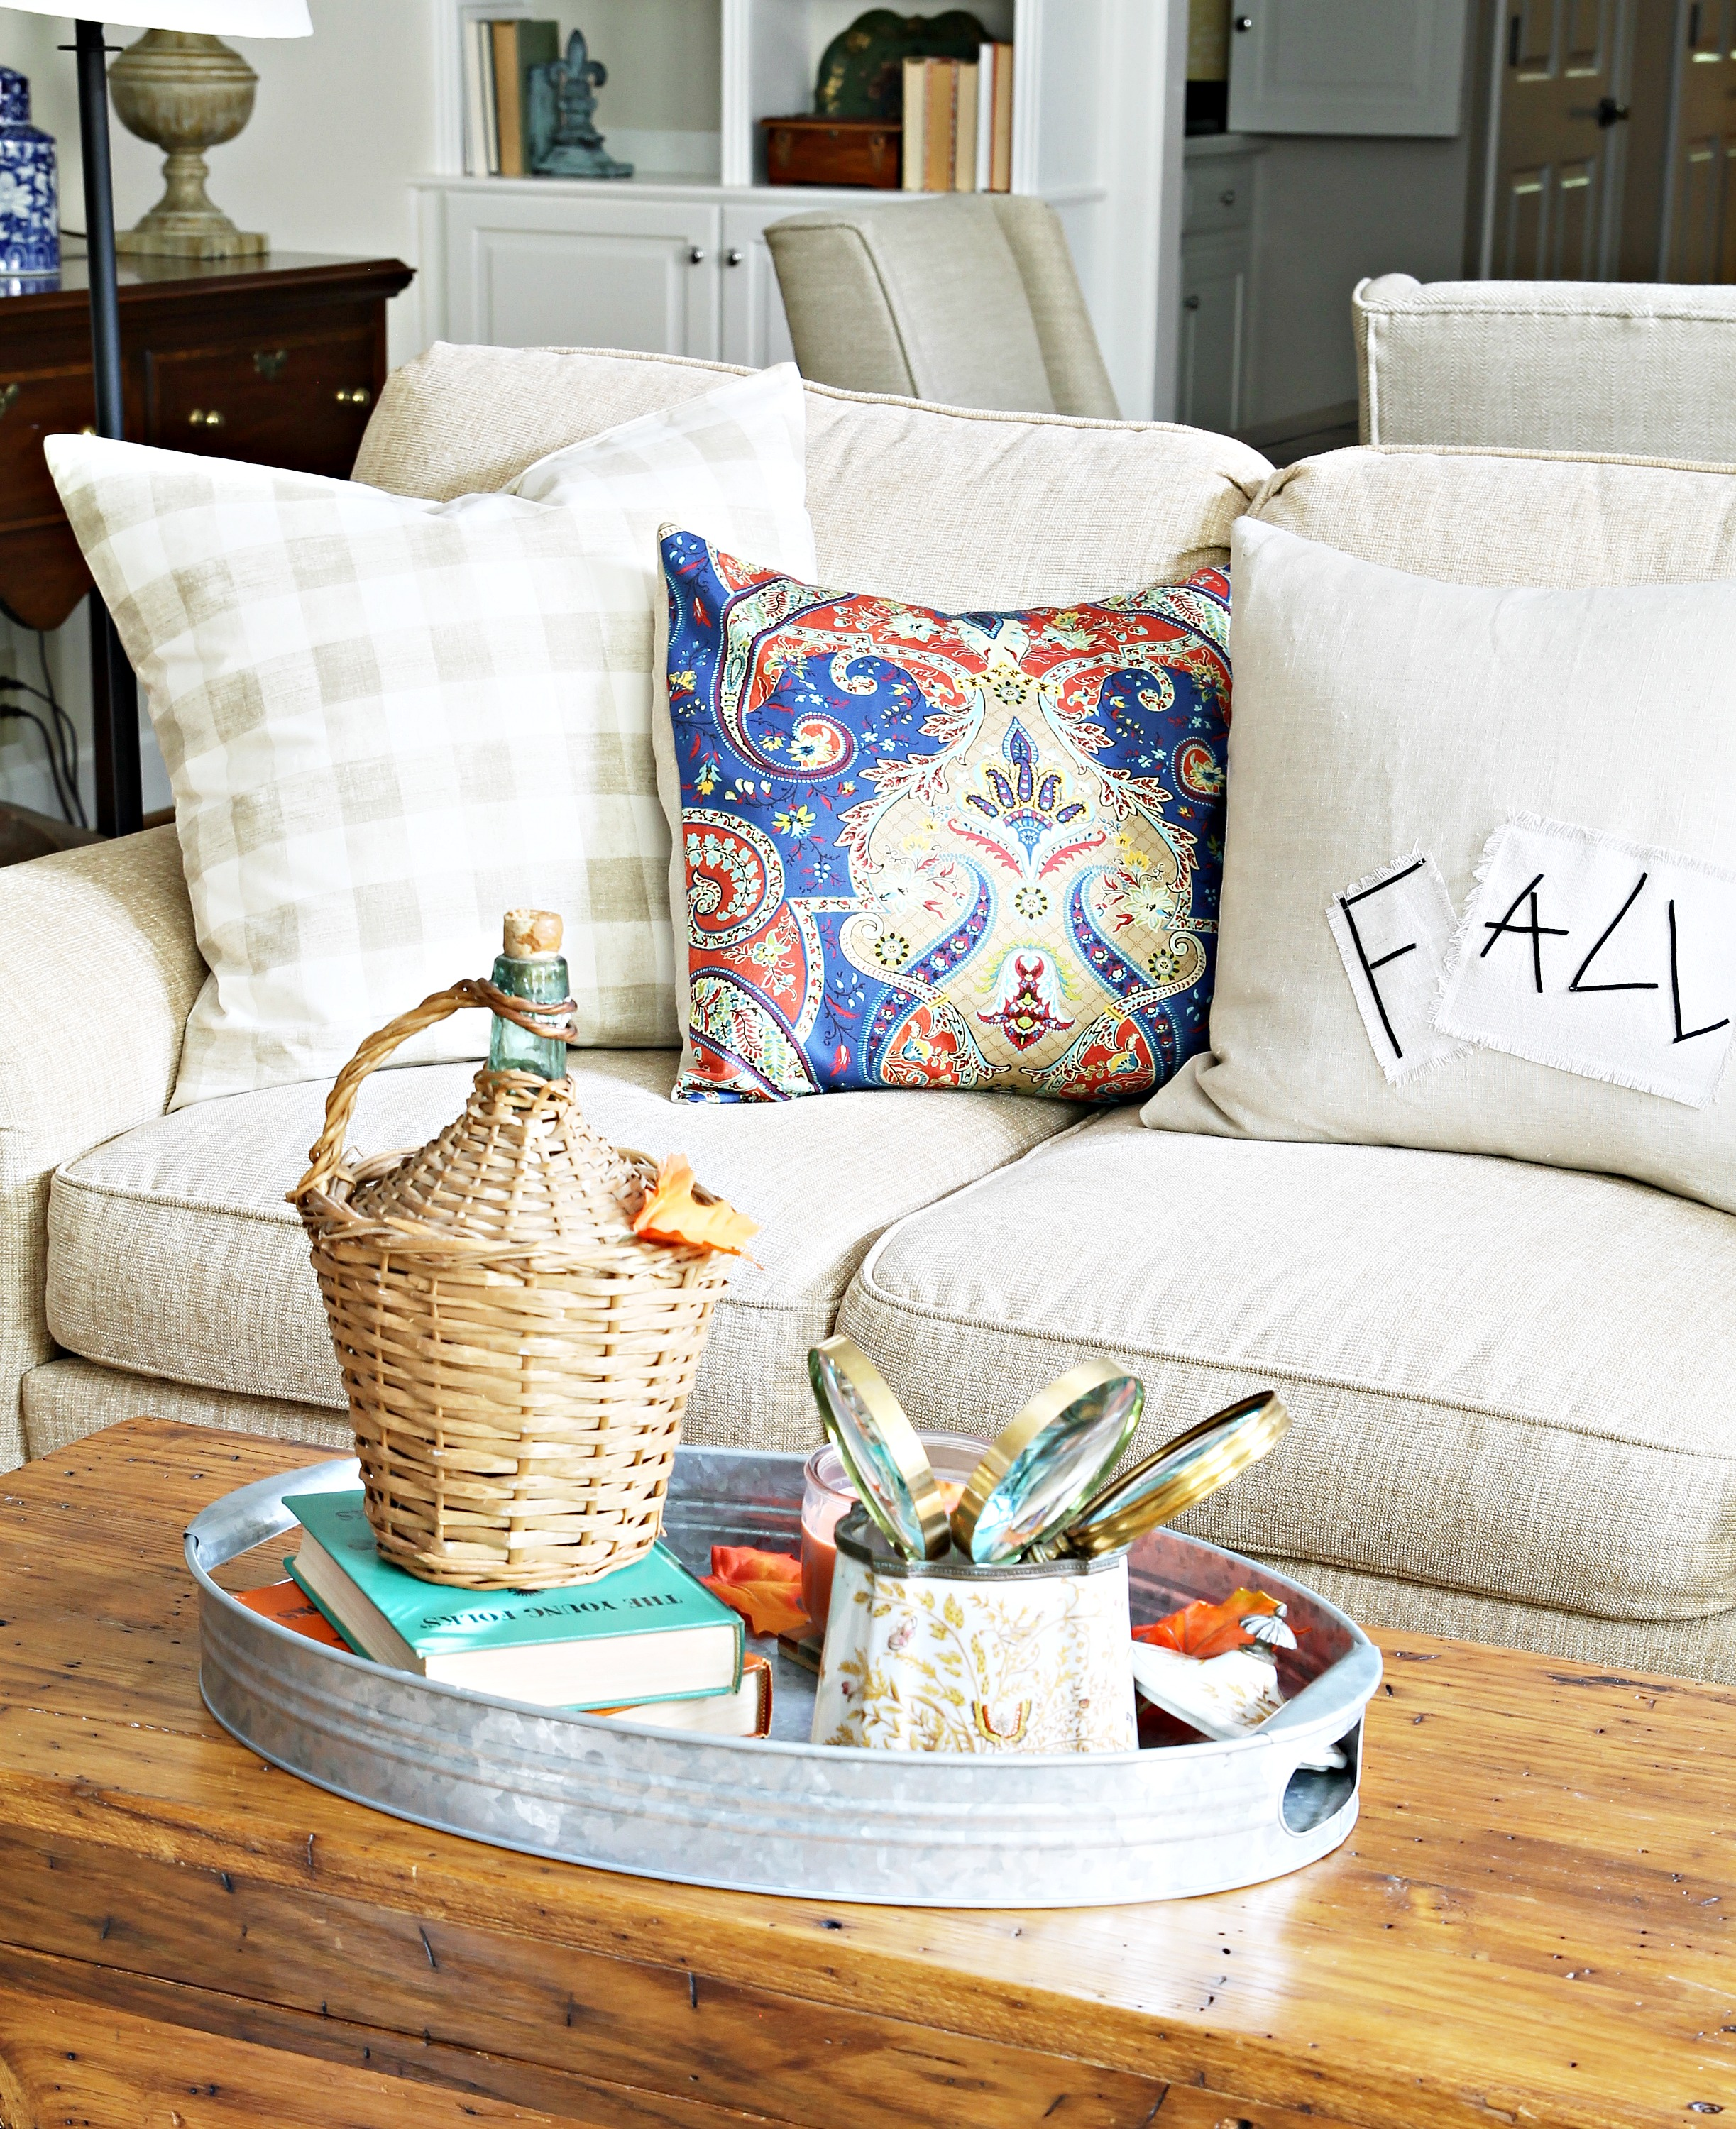 autumn set corded chenille pillows jacquard shipping orders on home free stripes rectangular over overstock product needles throw of garden pillow blazing